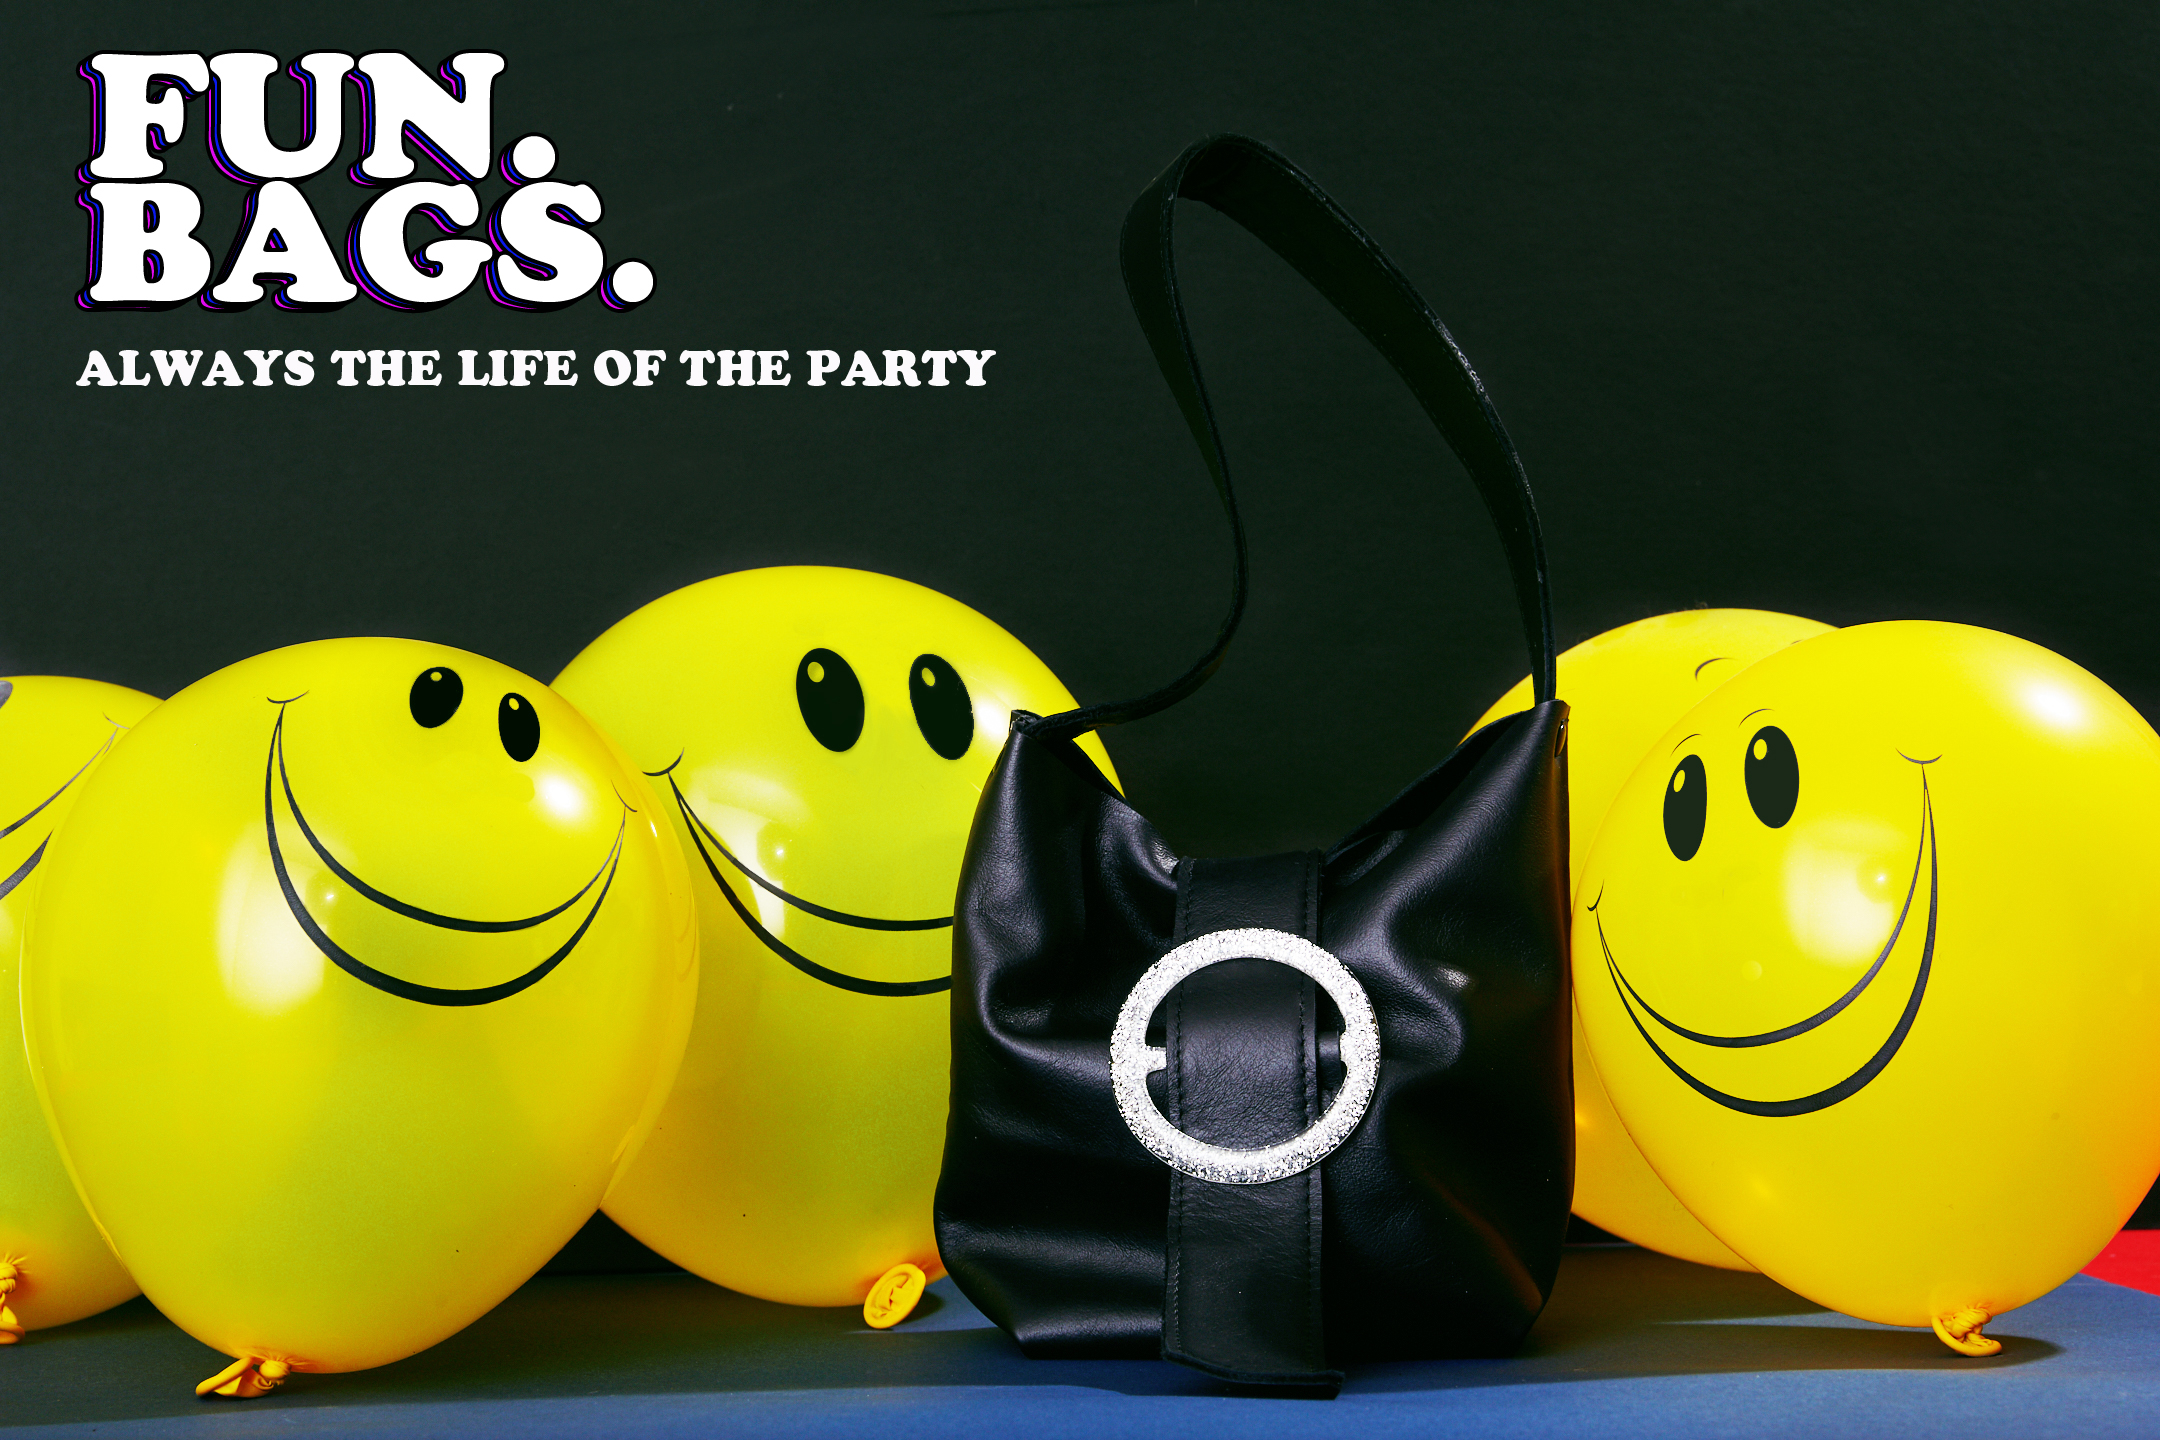 FUn-Bags-New-York-LIFE-OF-THE-Party2-.jpg